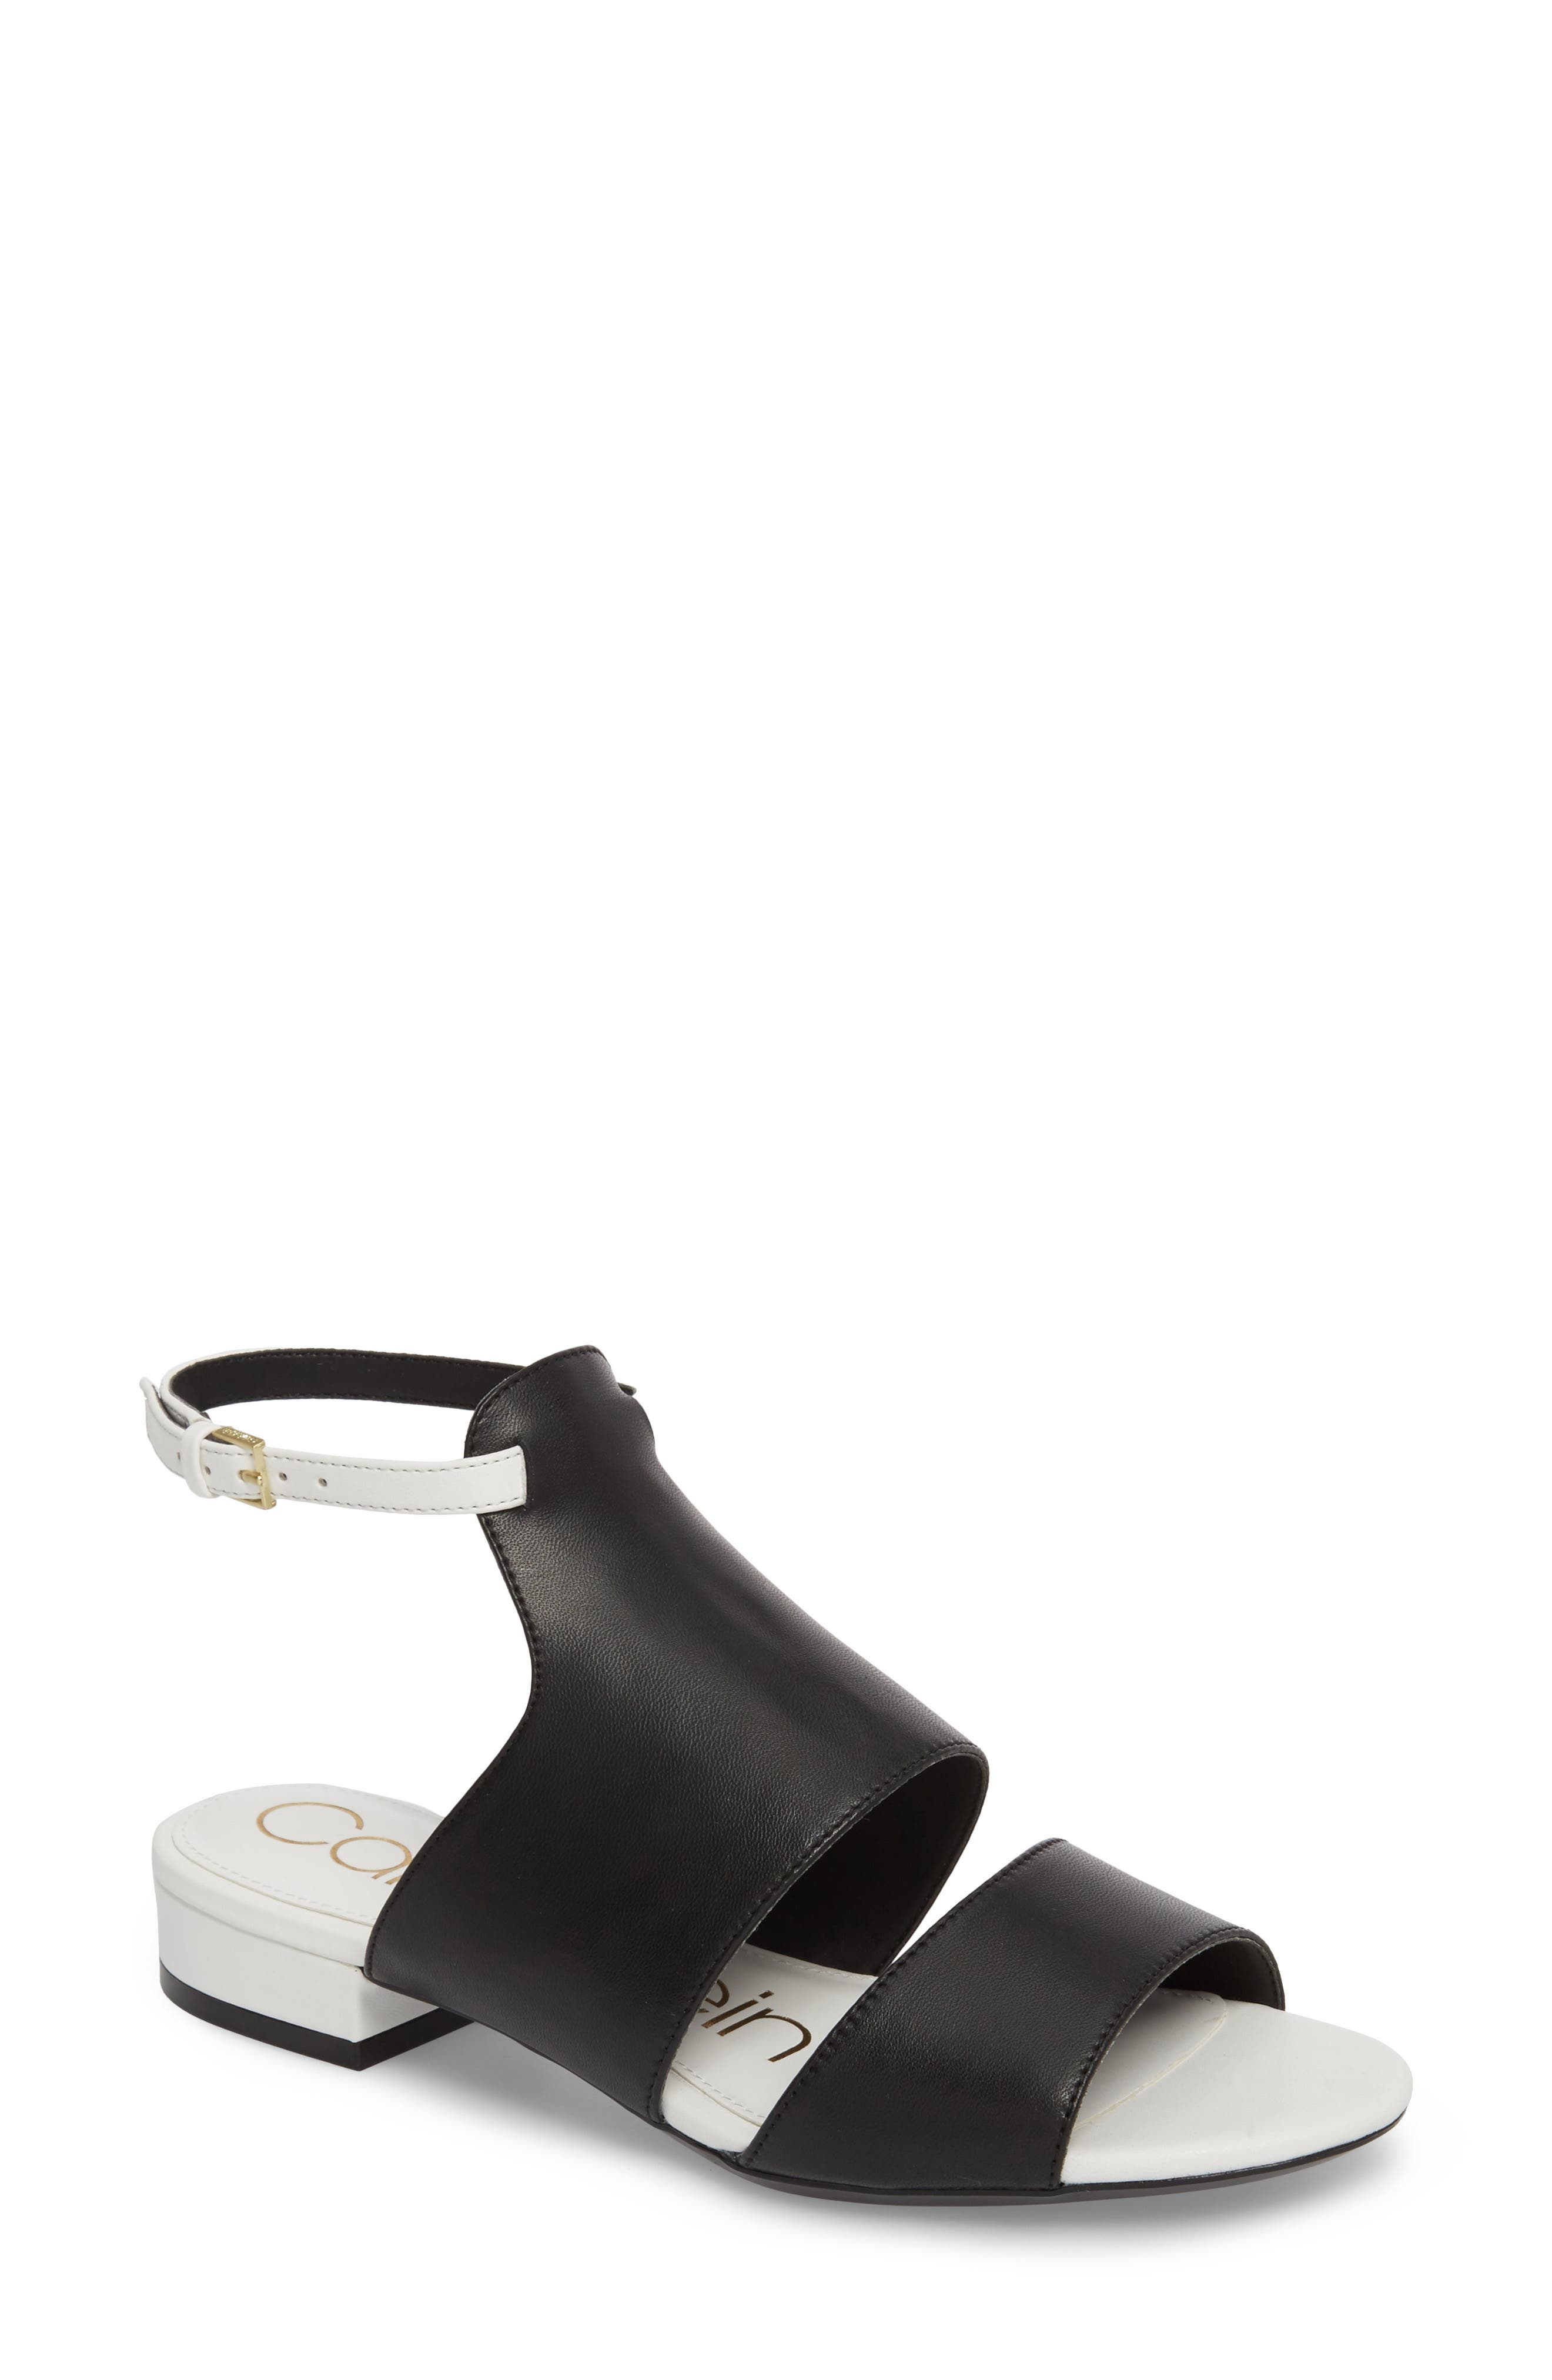 Fernarda Sandal,                             Main thumbnail 1, color,                             Black Leather